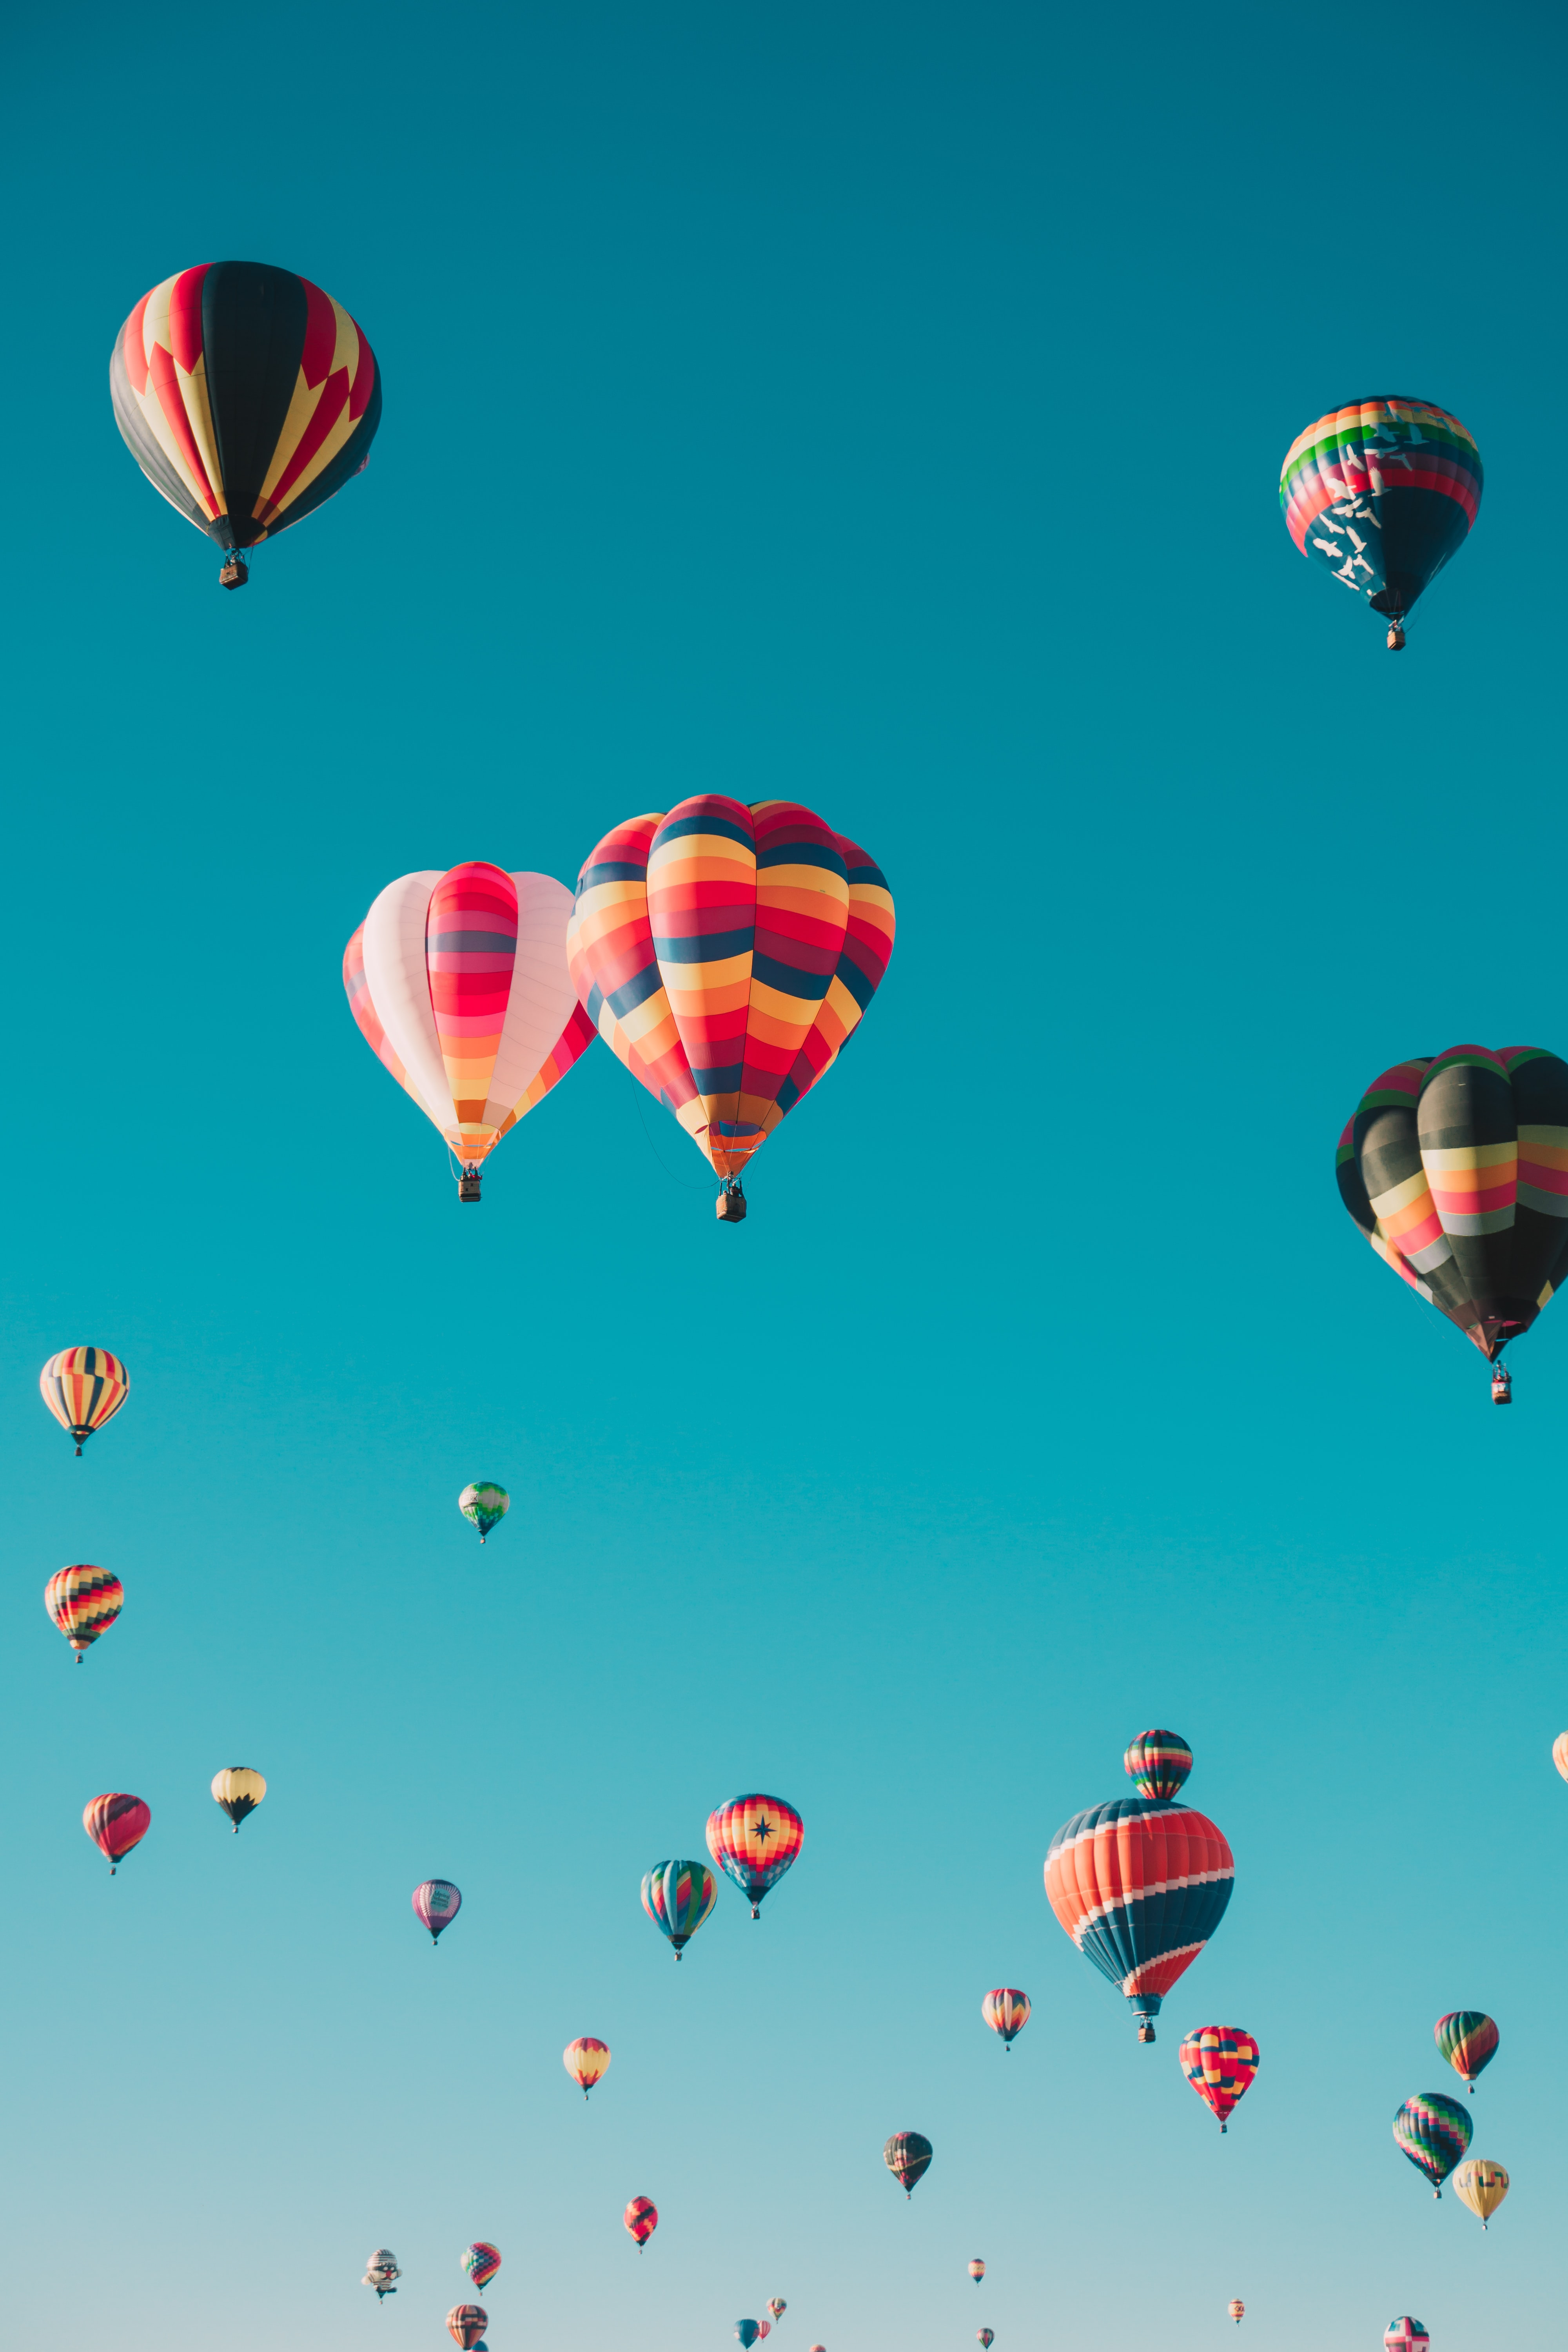 900 Balloon Images Download Hd Pictures Photos On Unsplash